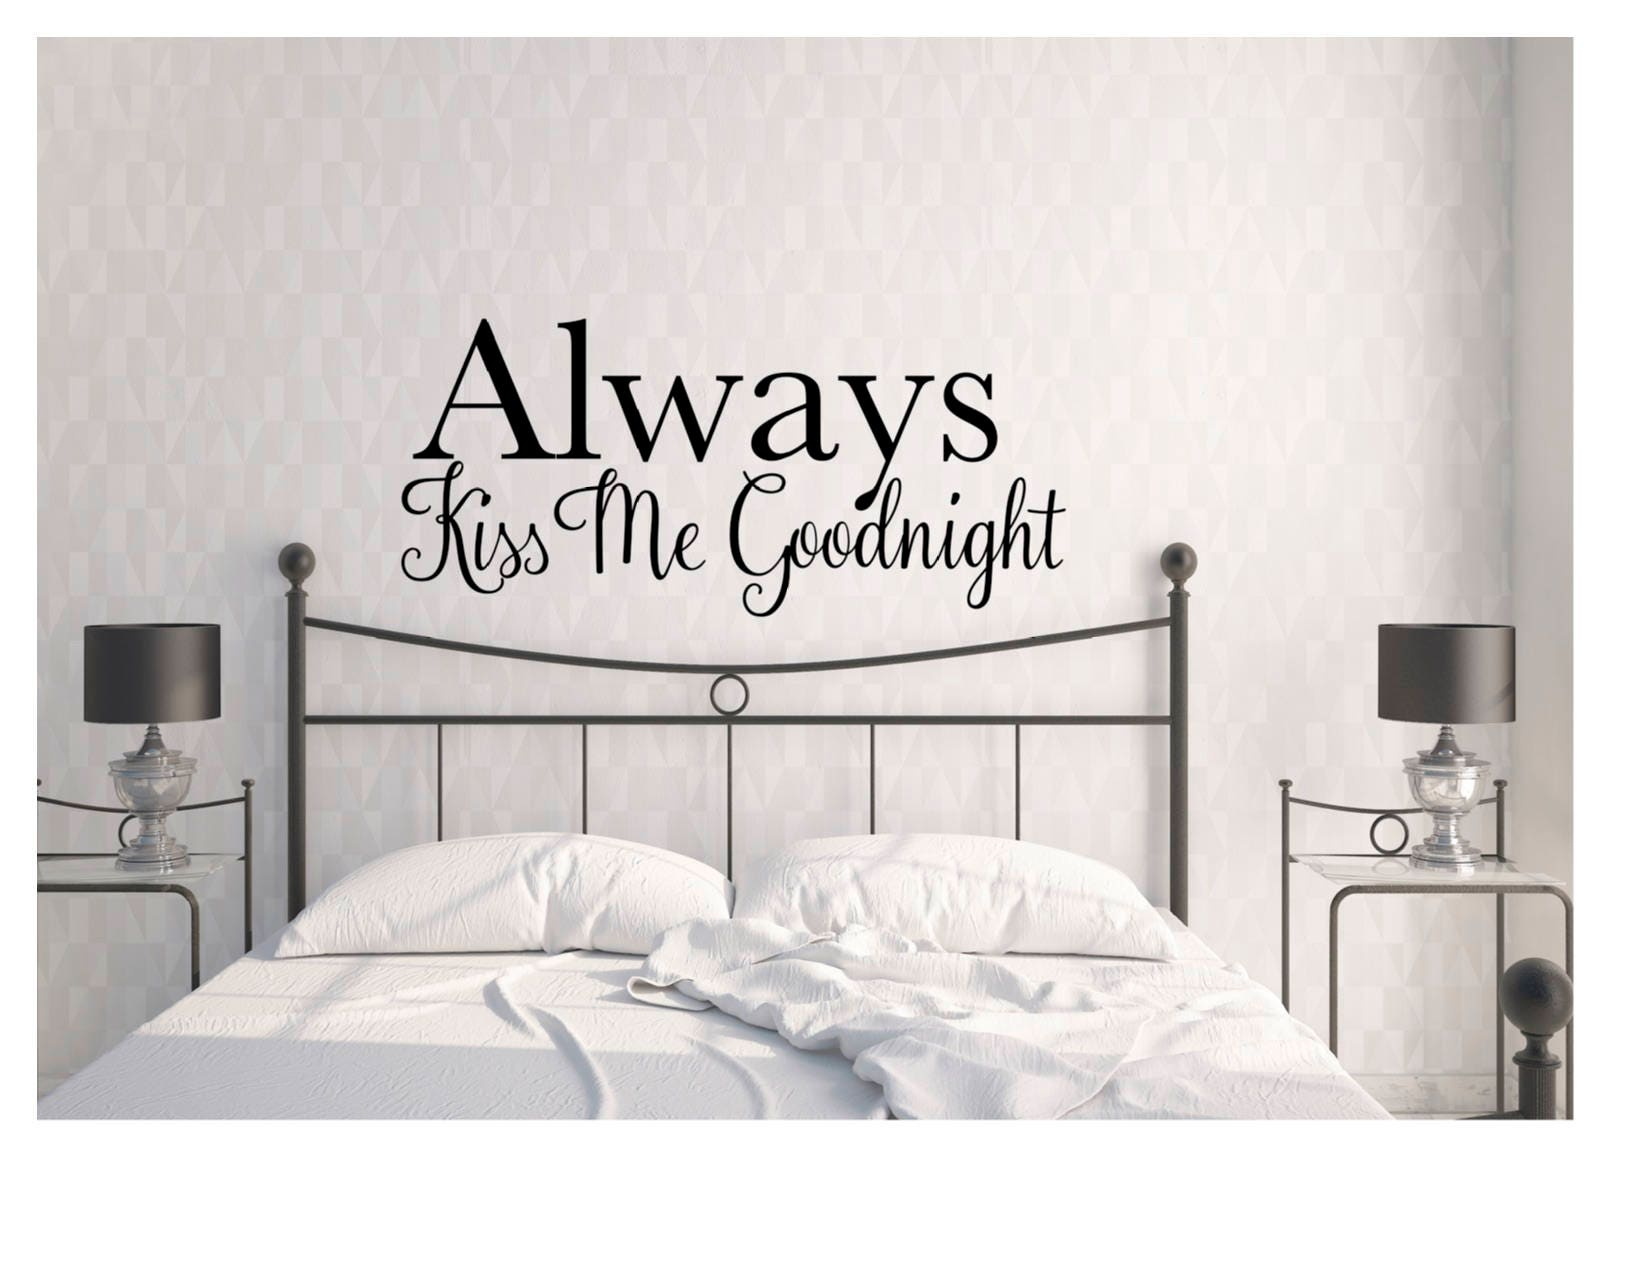 Always Kiss Me Goodnight Bedroom Master Bedroom Wall Decal Etsy